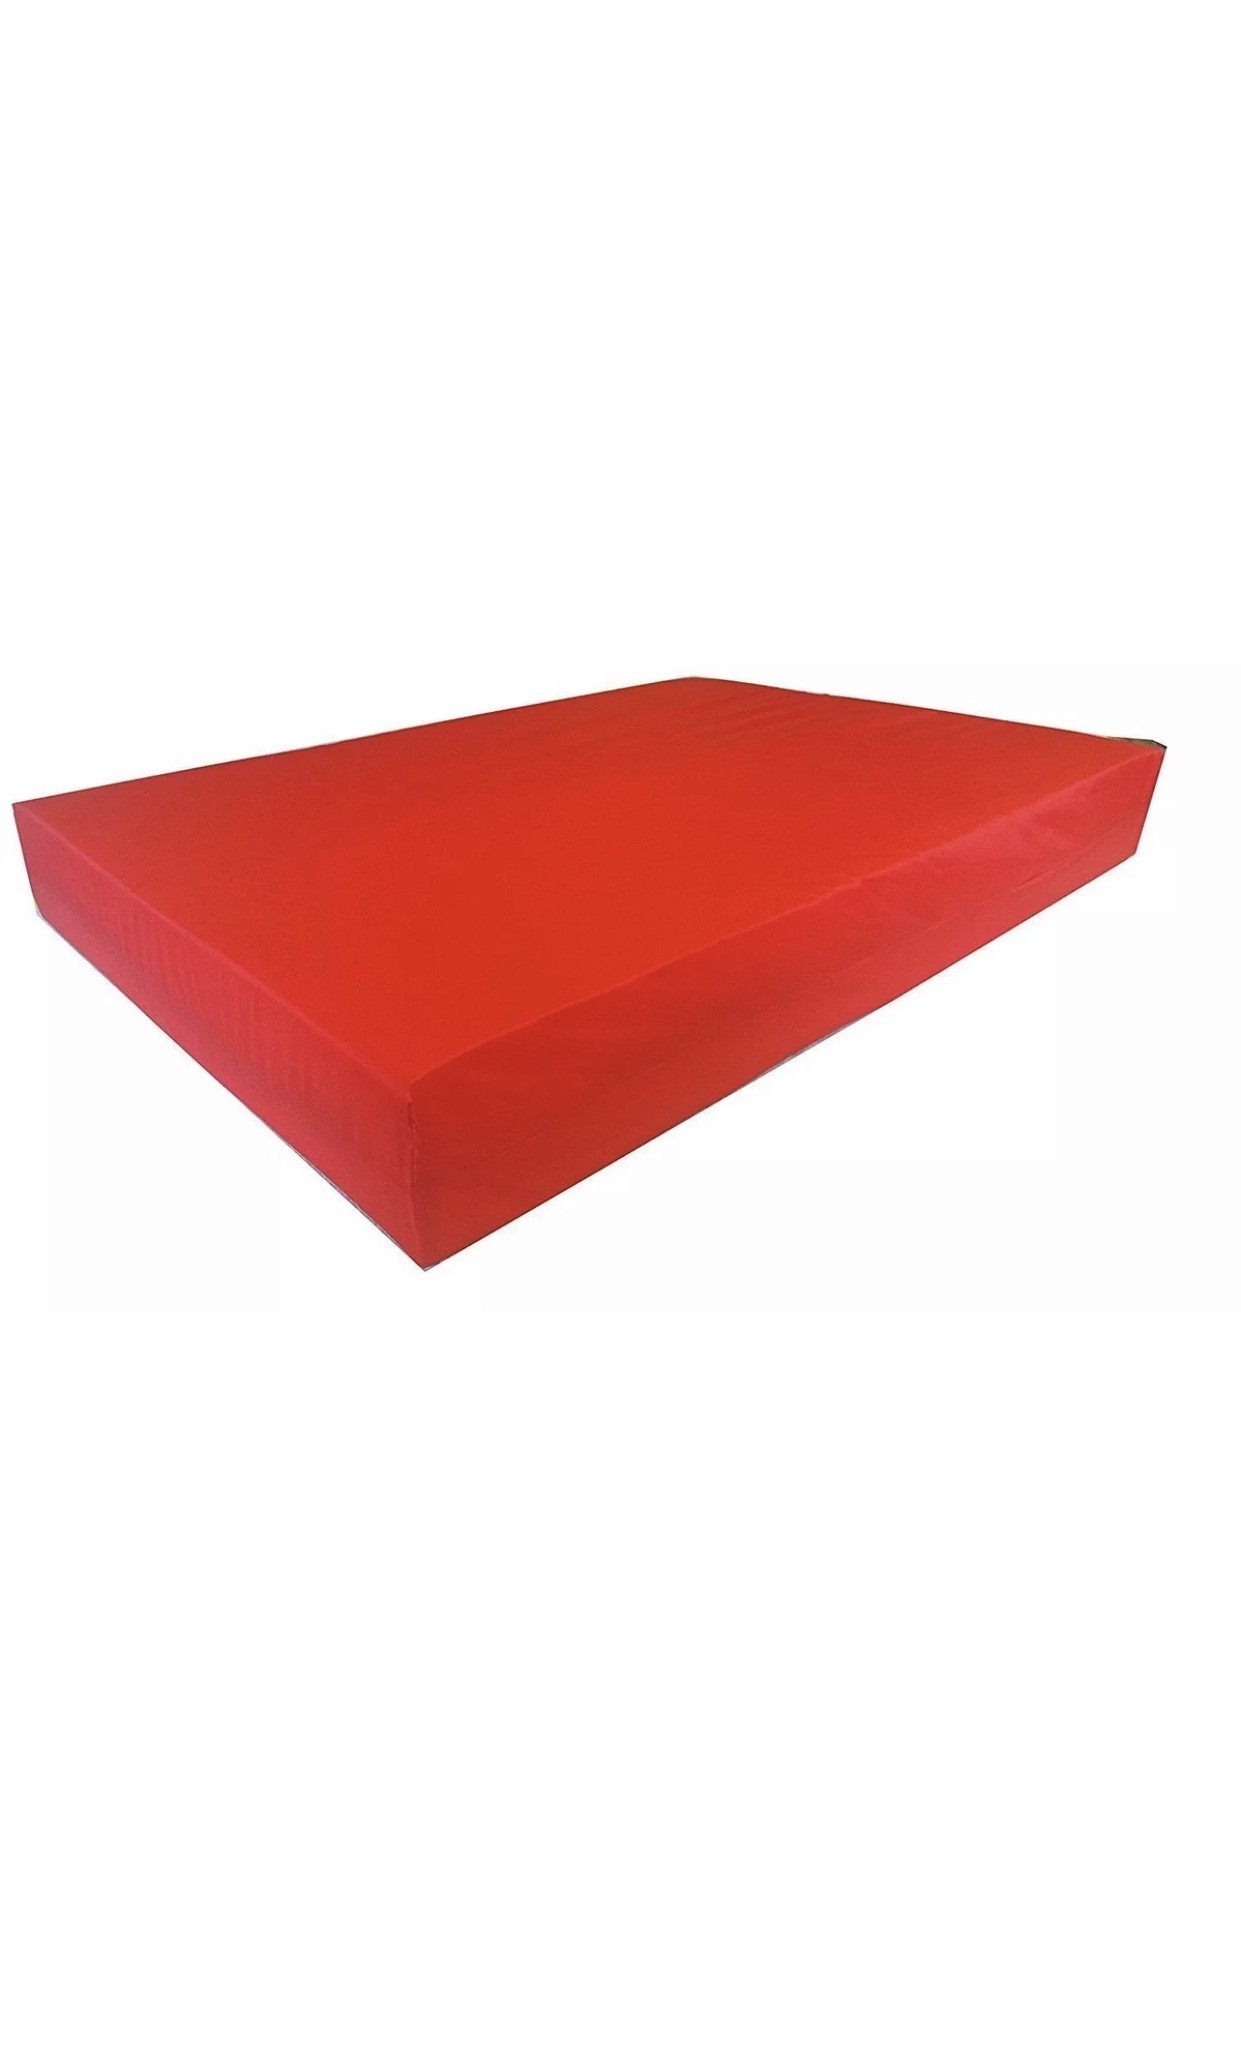 Extra Thick Gymnastics Crash Mat